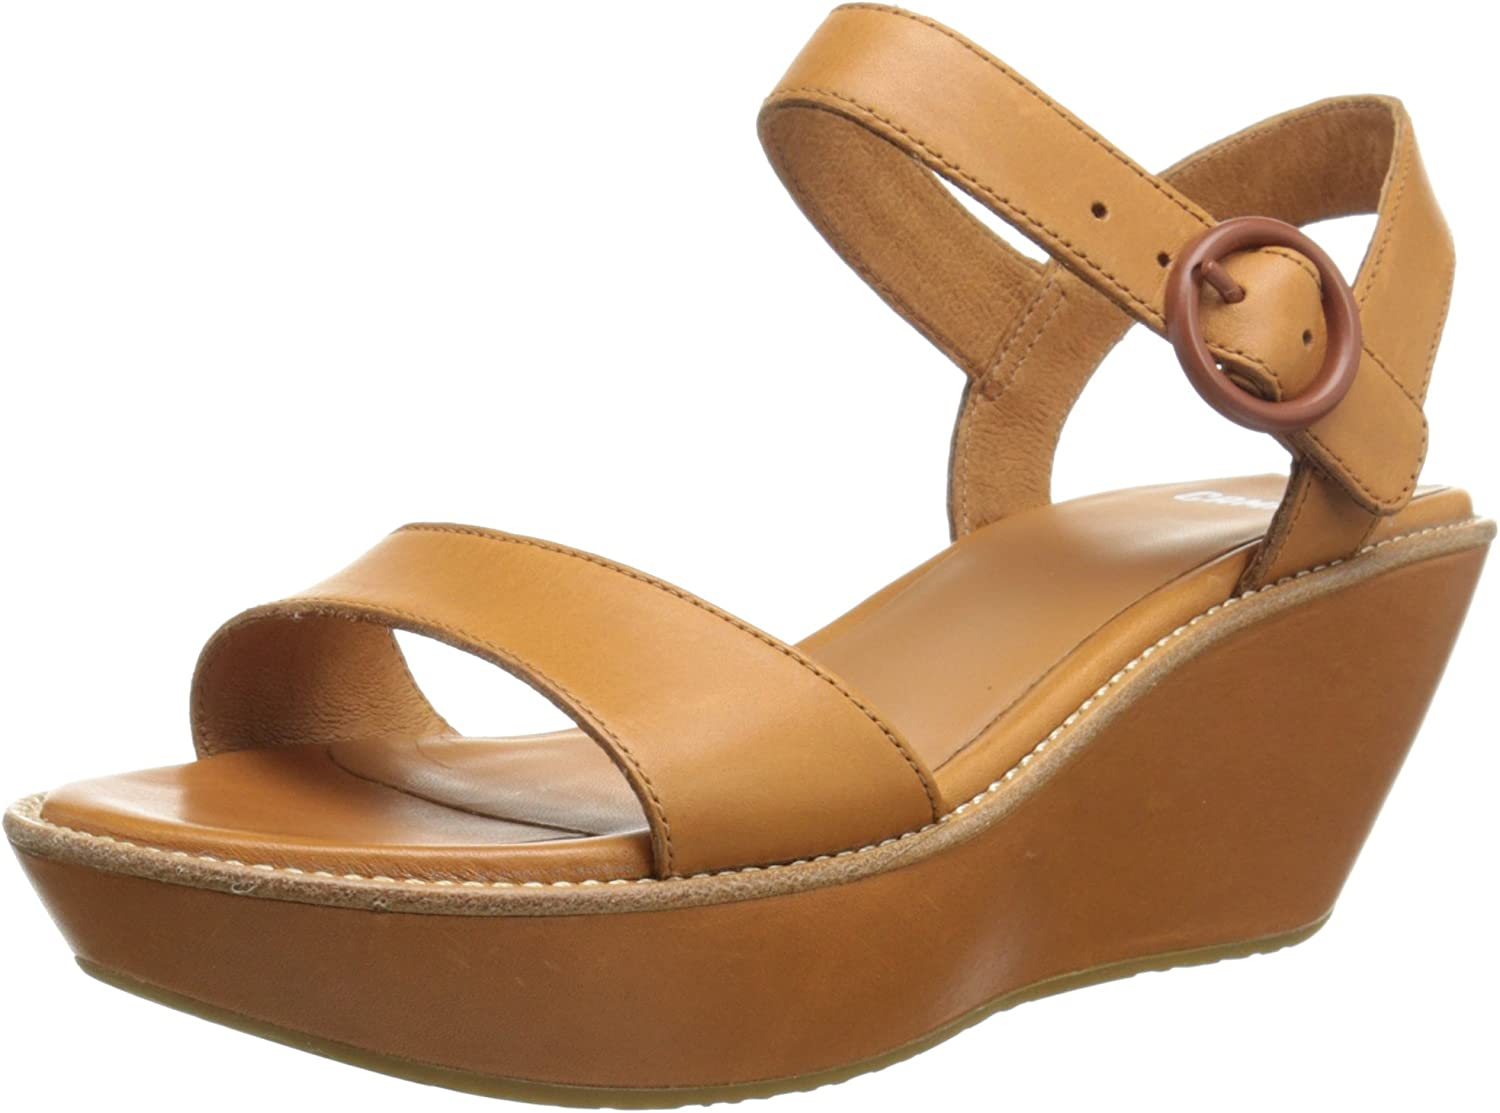 Camper Women's Damas Strap Wedge Sandal